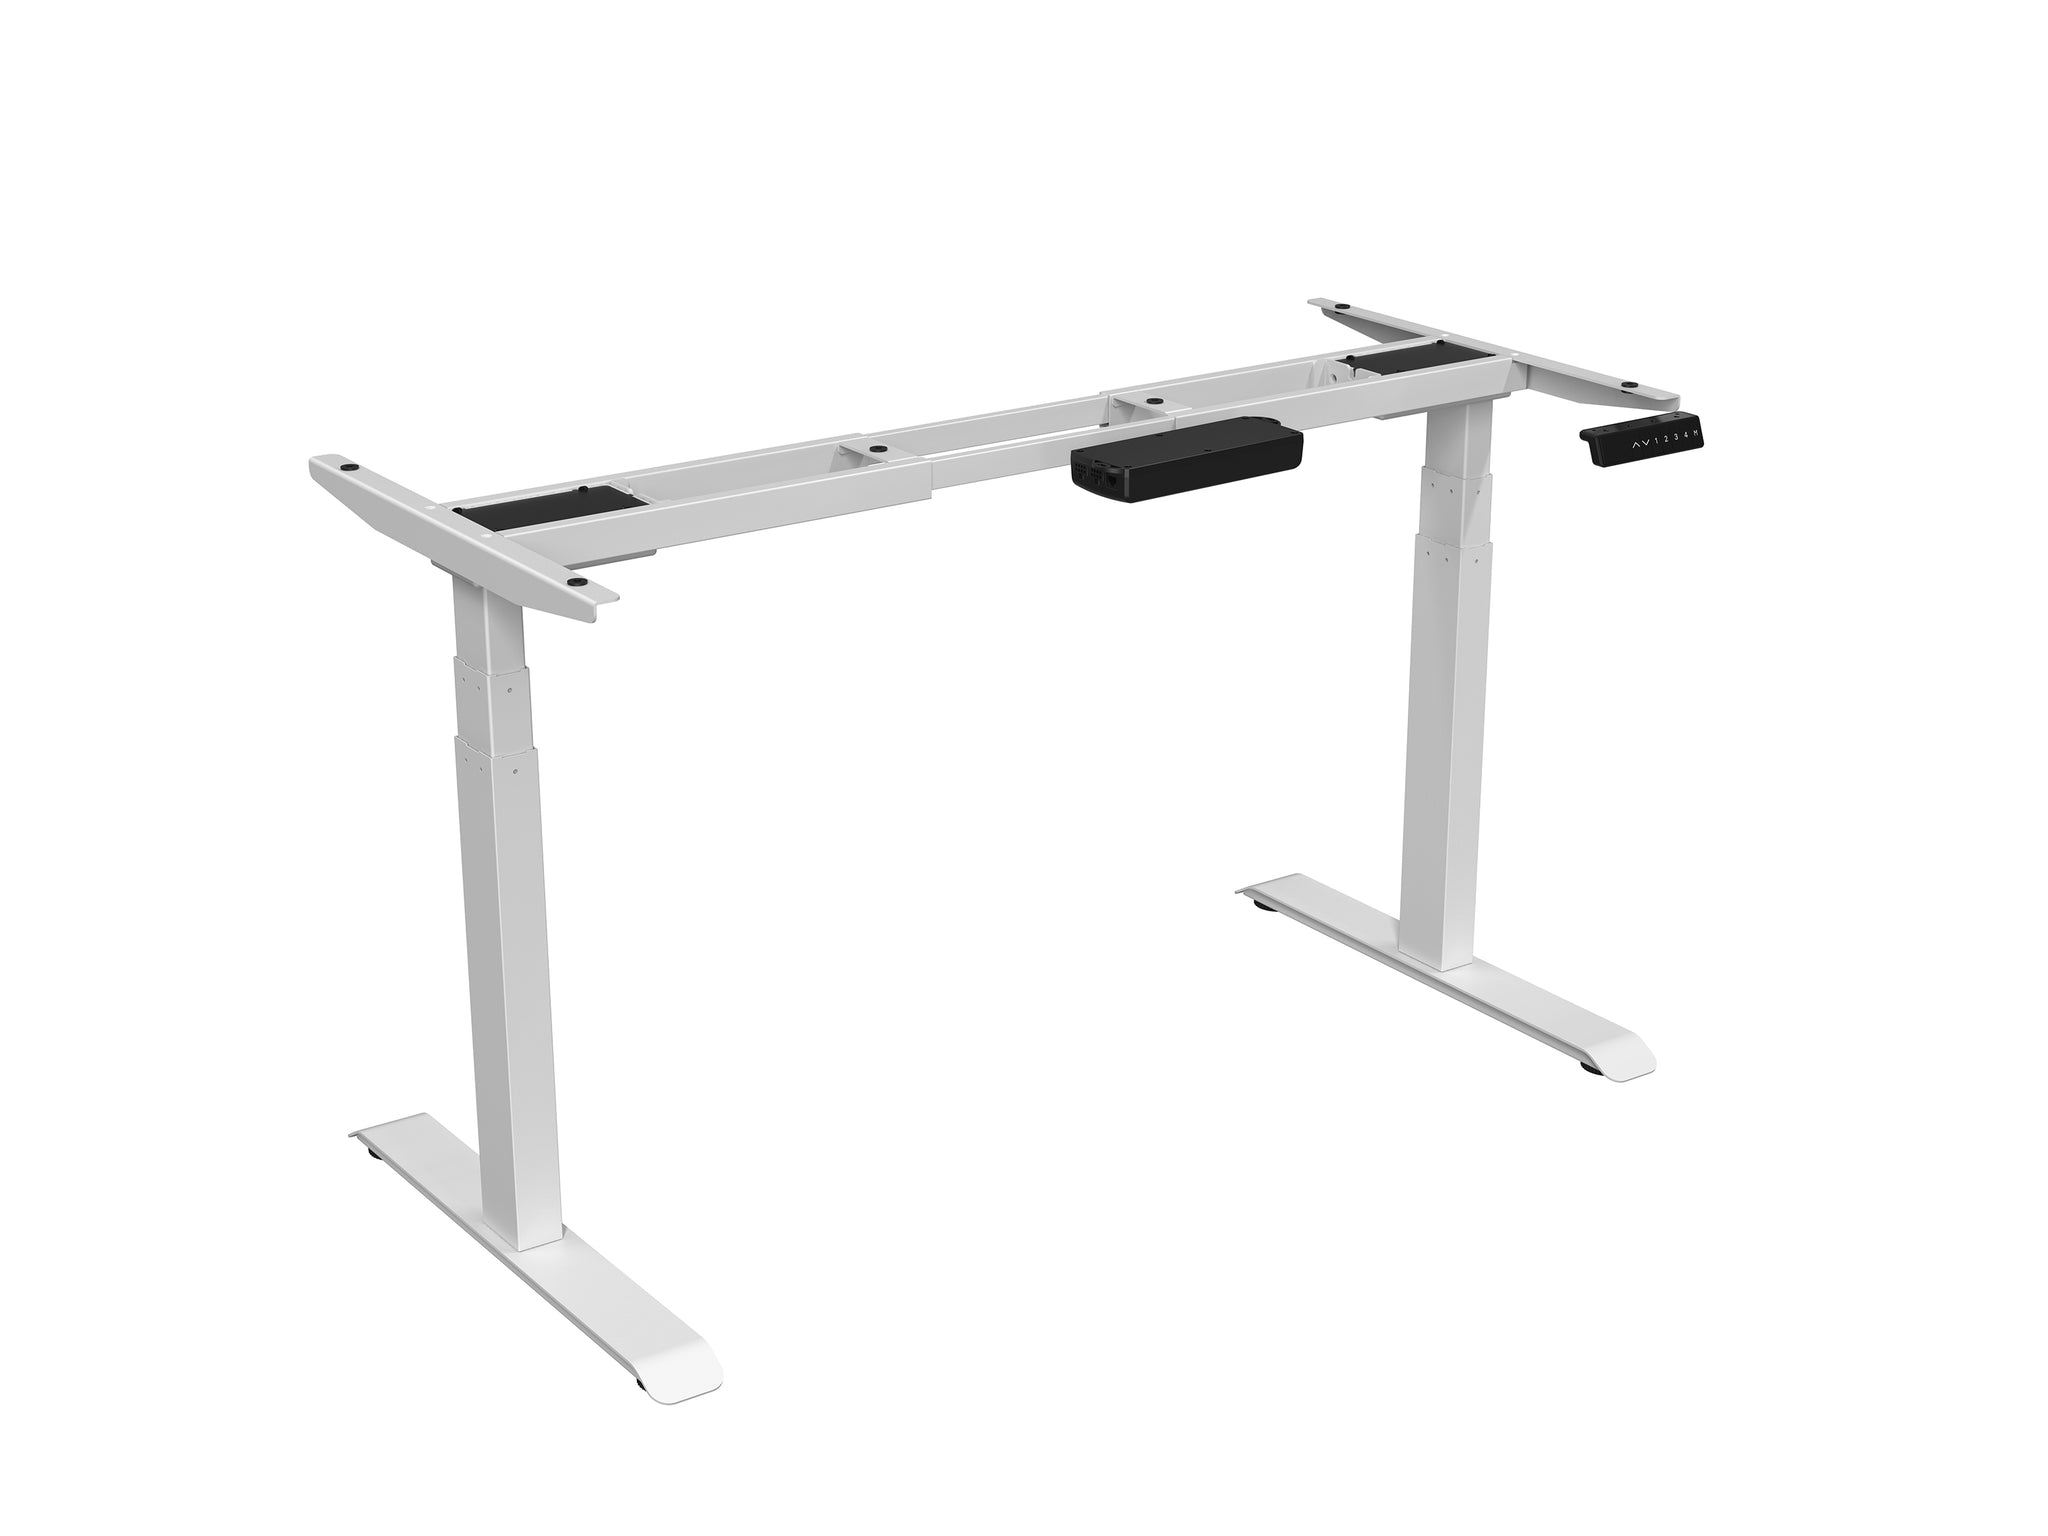 Dual Motor | Height-Adjustable Desk Frame (3 Stage)